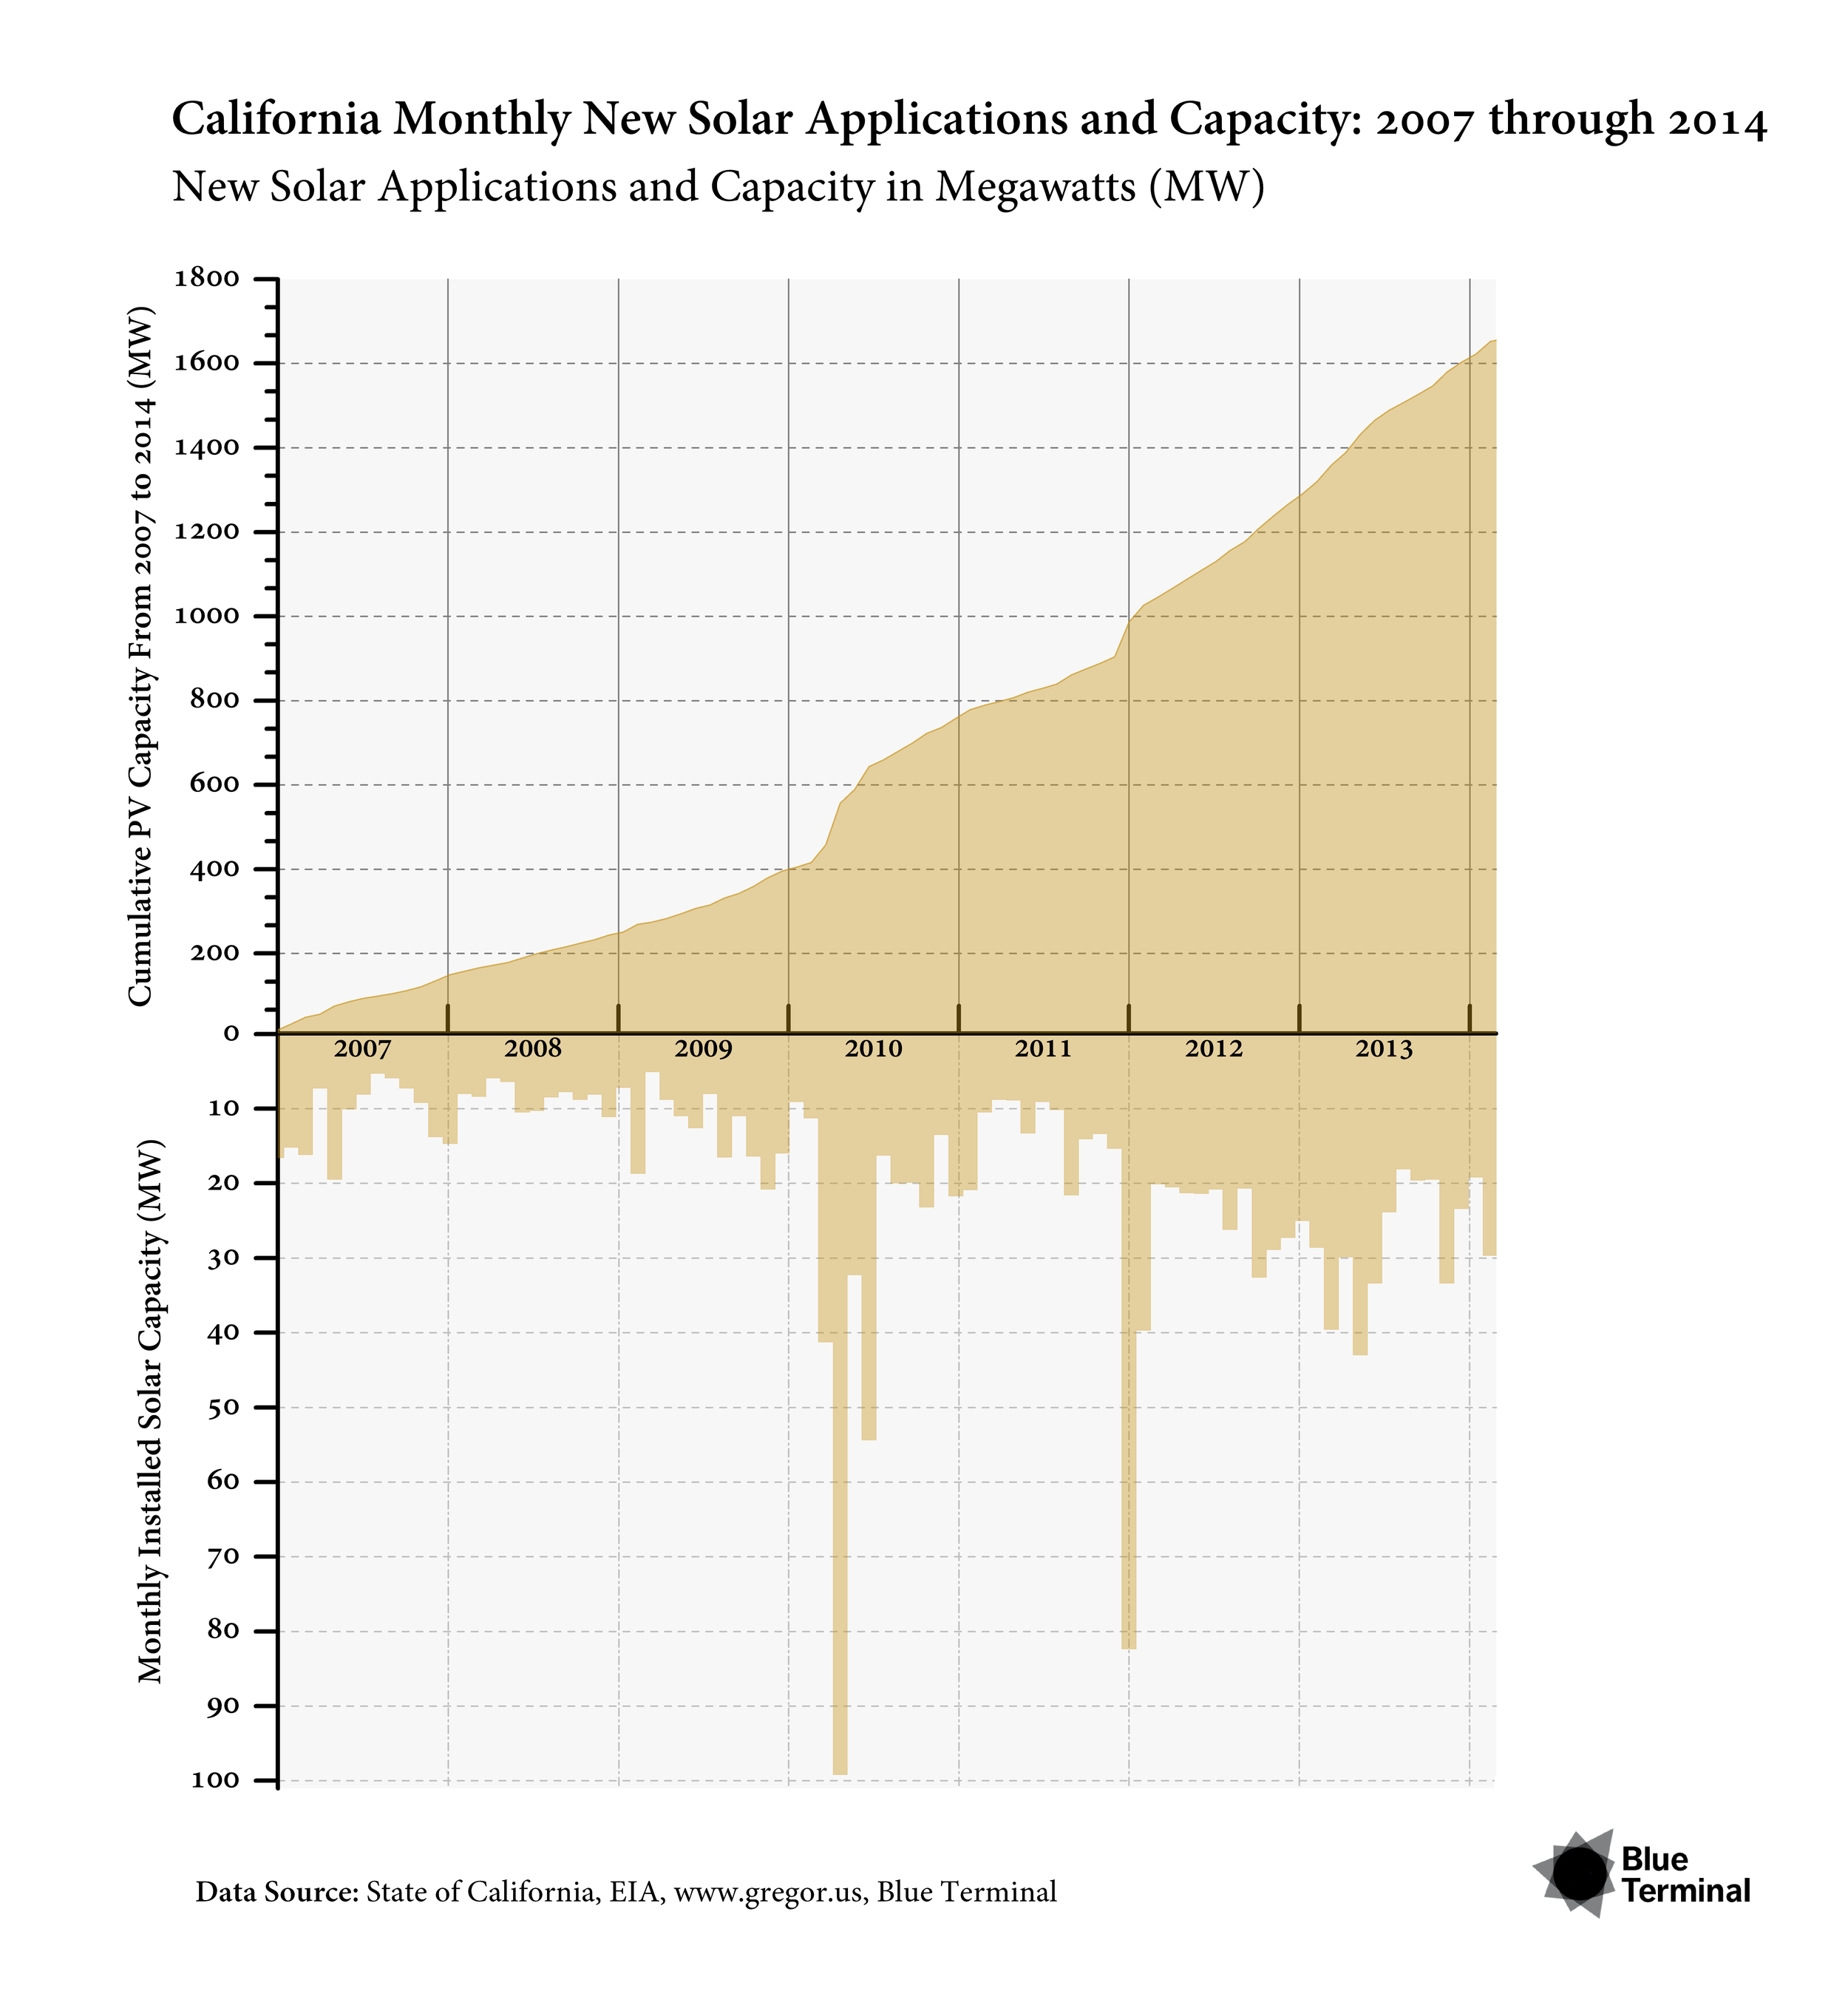 CALIFORNIA MONTHLY NEW SOLAR APPLICATIONS AND CAPACITY: 2007 THROUGH2014   Release Date : February 2014  By using two y-axes, we show the cumulative amount of PV capacity added from 2007 through2014 in California on the top, while below we show you the individual monthly additions thatcontributed to the accumulation of solar capacity. This allows a quick insight into whichmonths were outliers in the growth of PV.